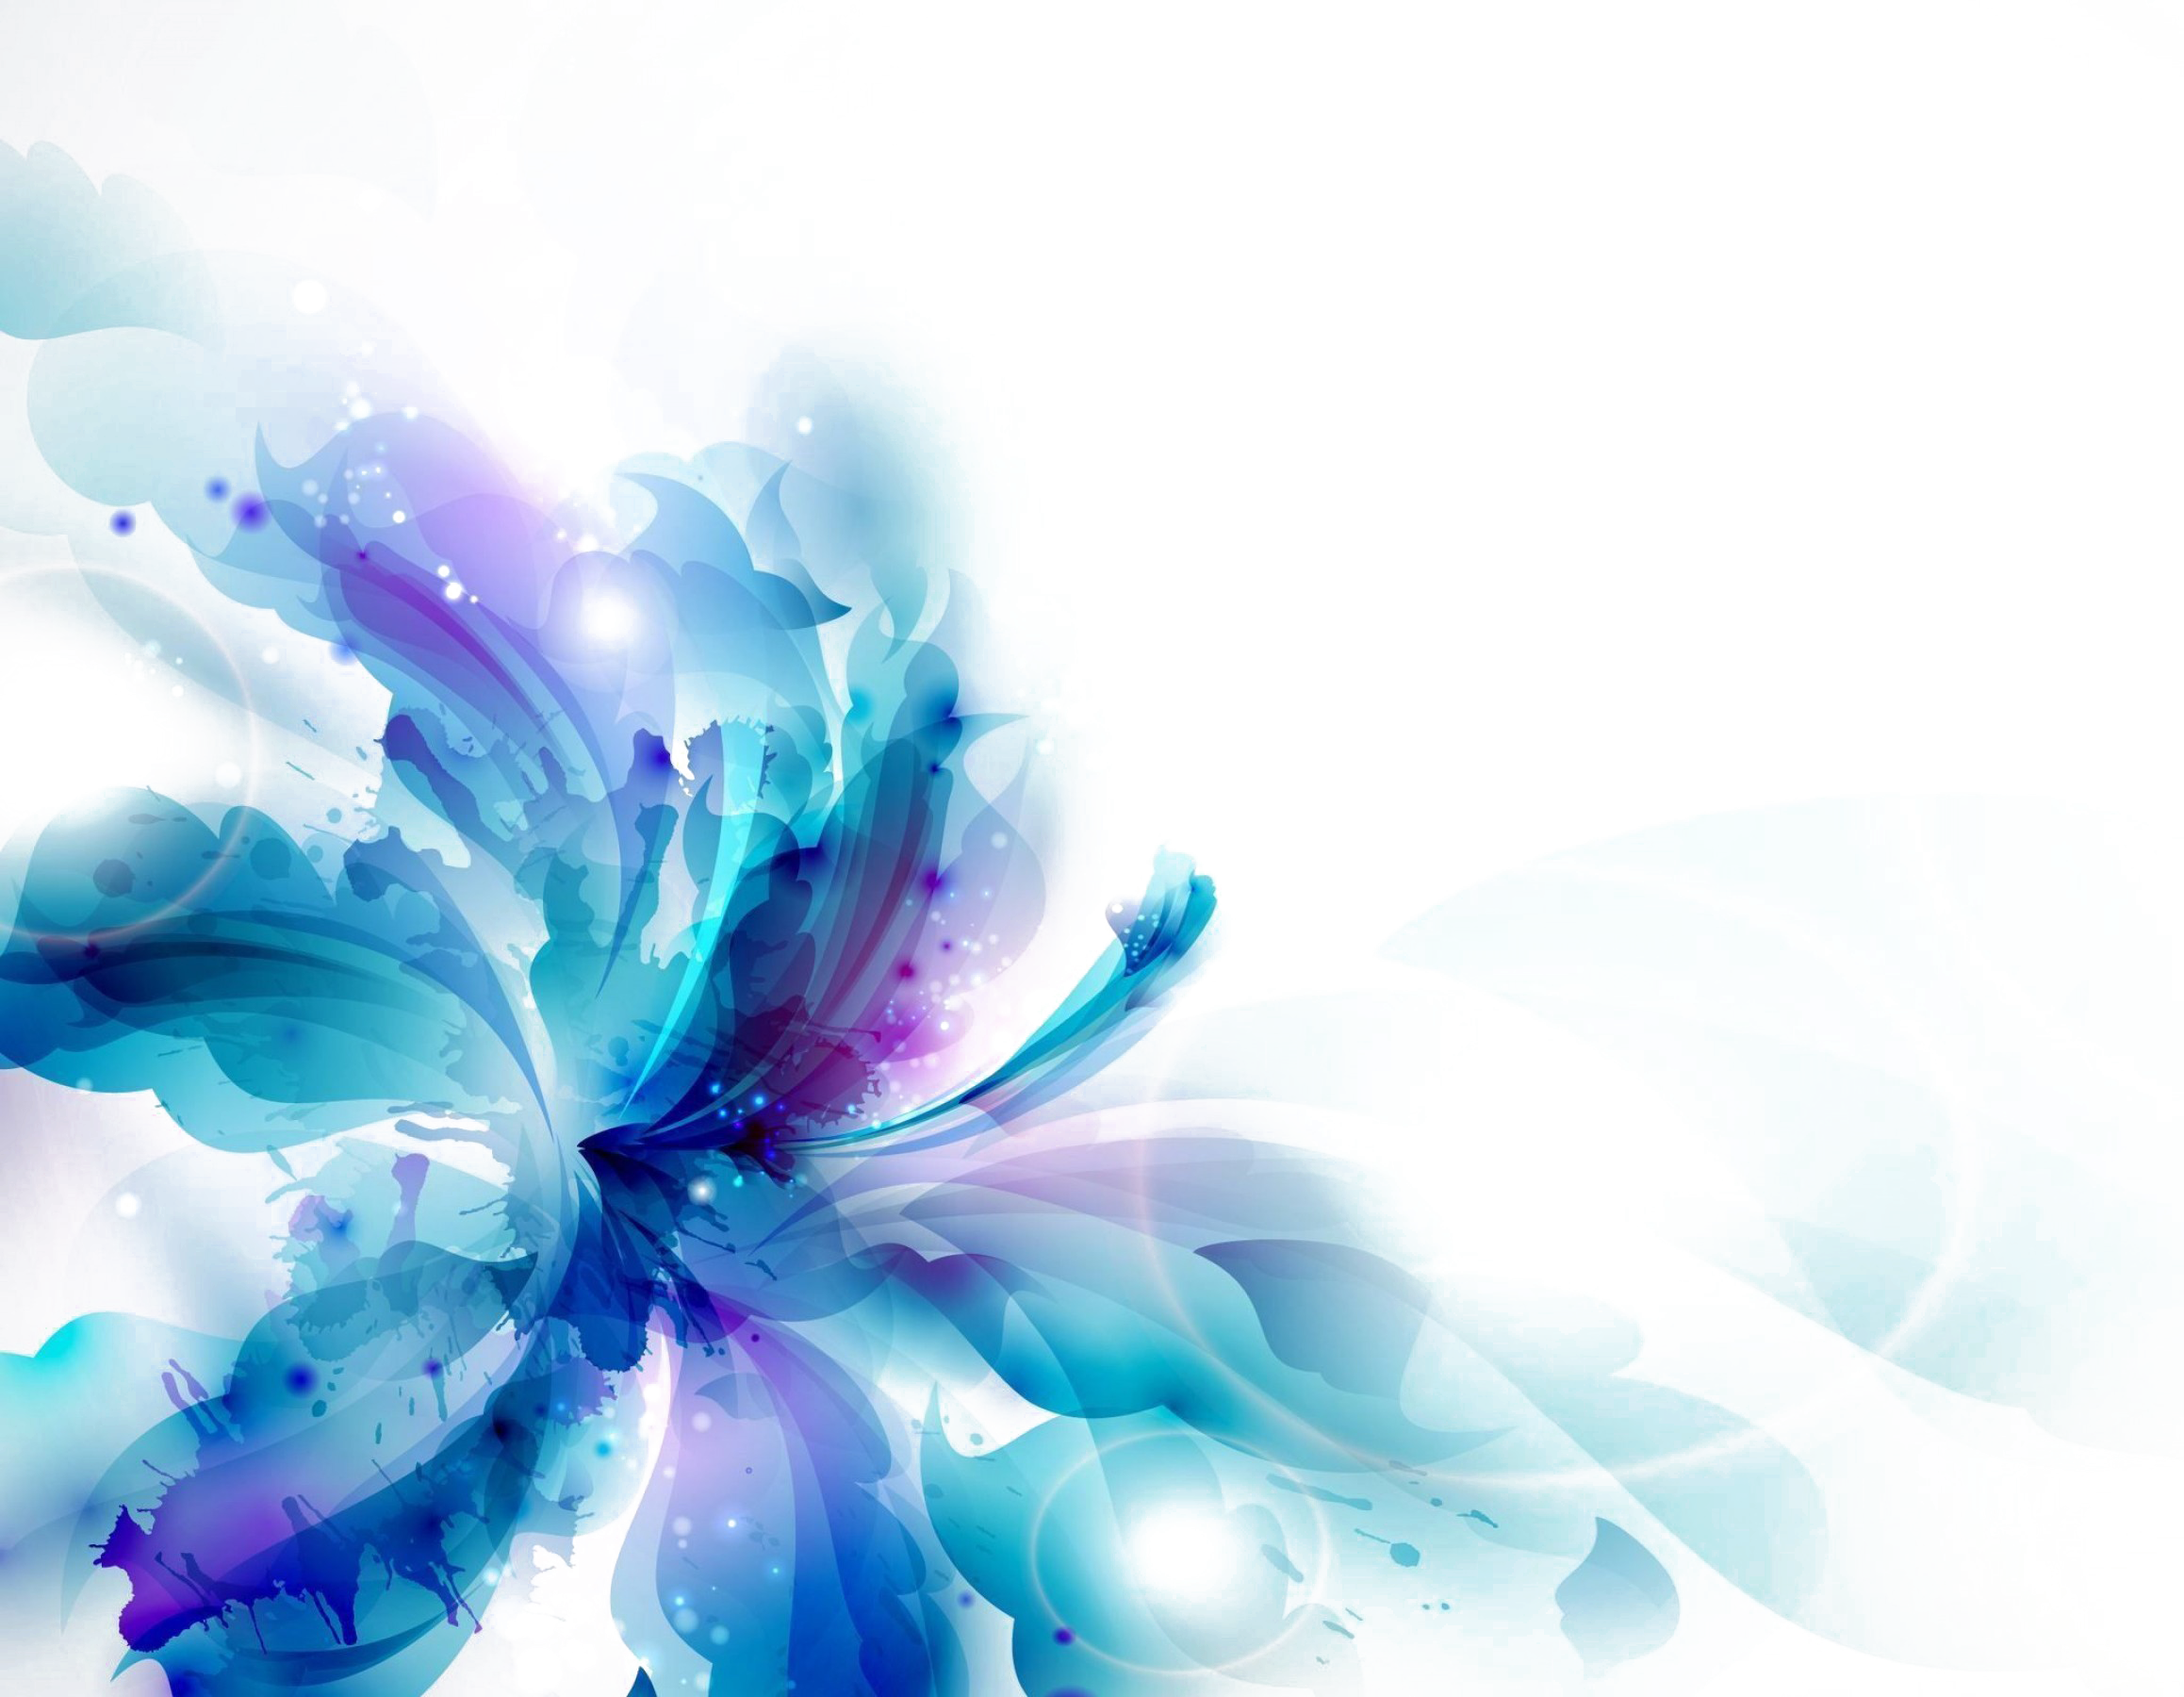 Blue Abstract Flowers Png - Abstract Flower PNG Transparent Images 17 - 2317 X 1800 - Making ...